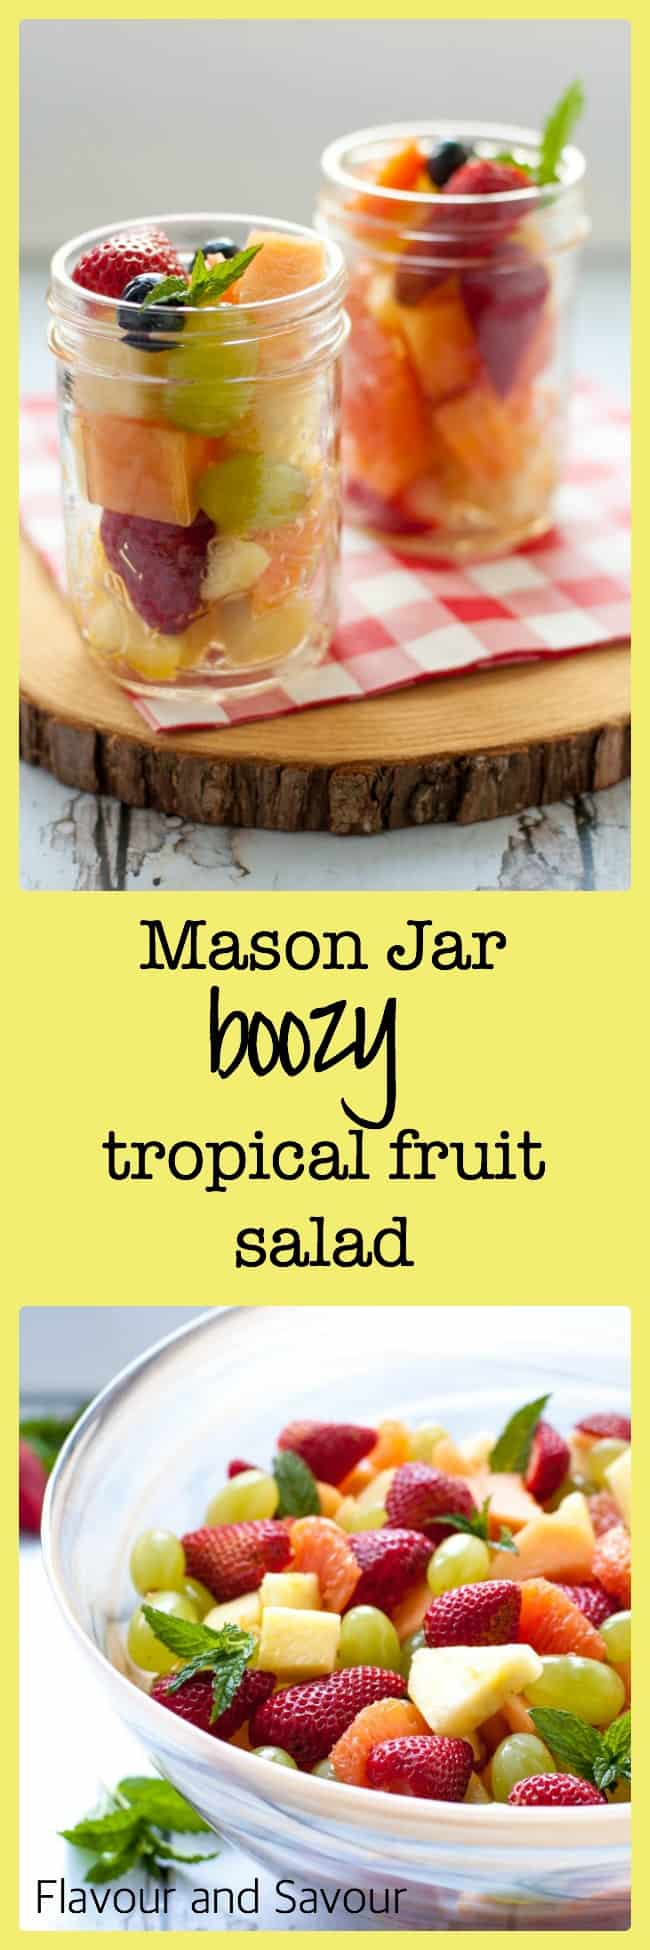 Mason Jar Boozy Tropical Fruit Salad. Fresh tropical fruit drizzled with Limoncello liqueur in a Mason jar makes a fancy dessert for your next picnic or camping trip!